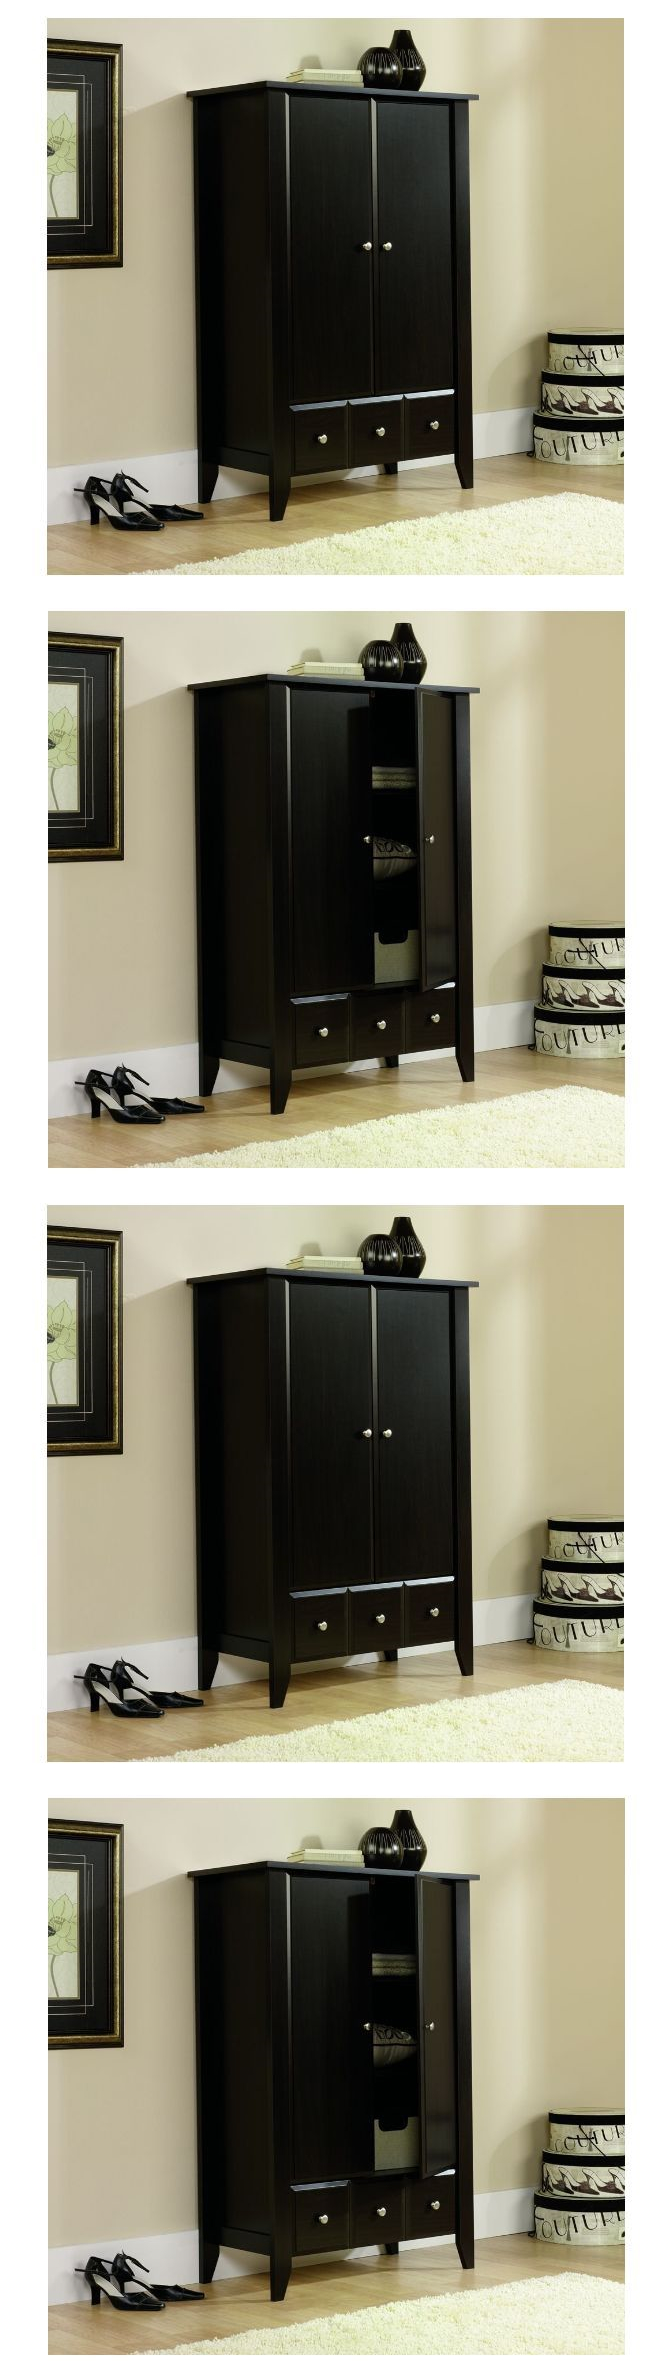 Armoires and wardrobes wardrobe armoire for clothes bedroom